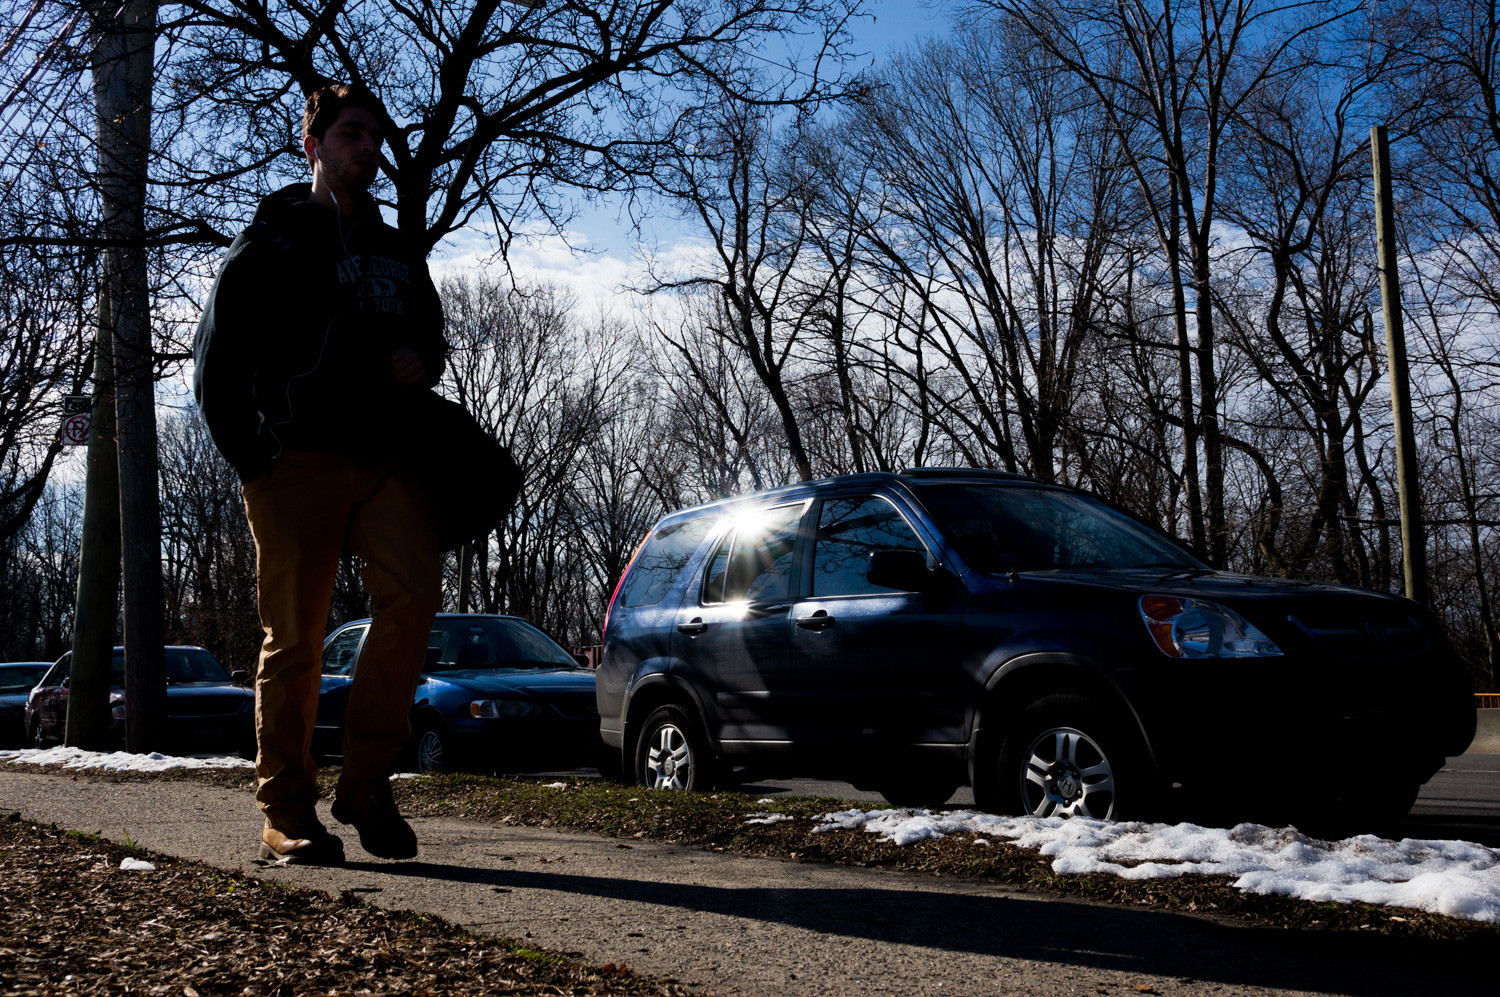 A pedestrian walks alongside parked cars on Jerome Avenue near Van Cortlandt Park. A new study by the app SpotAngels found that cars parked along Jerome Avenue near Van Cortlandt Park are particularly susceptible to break-ins.